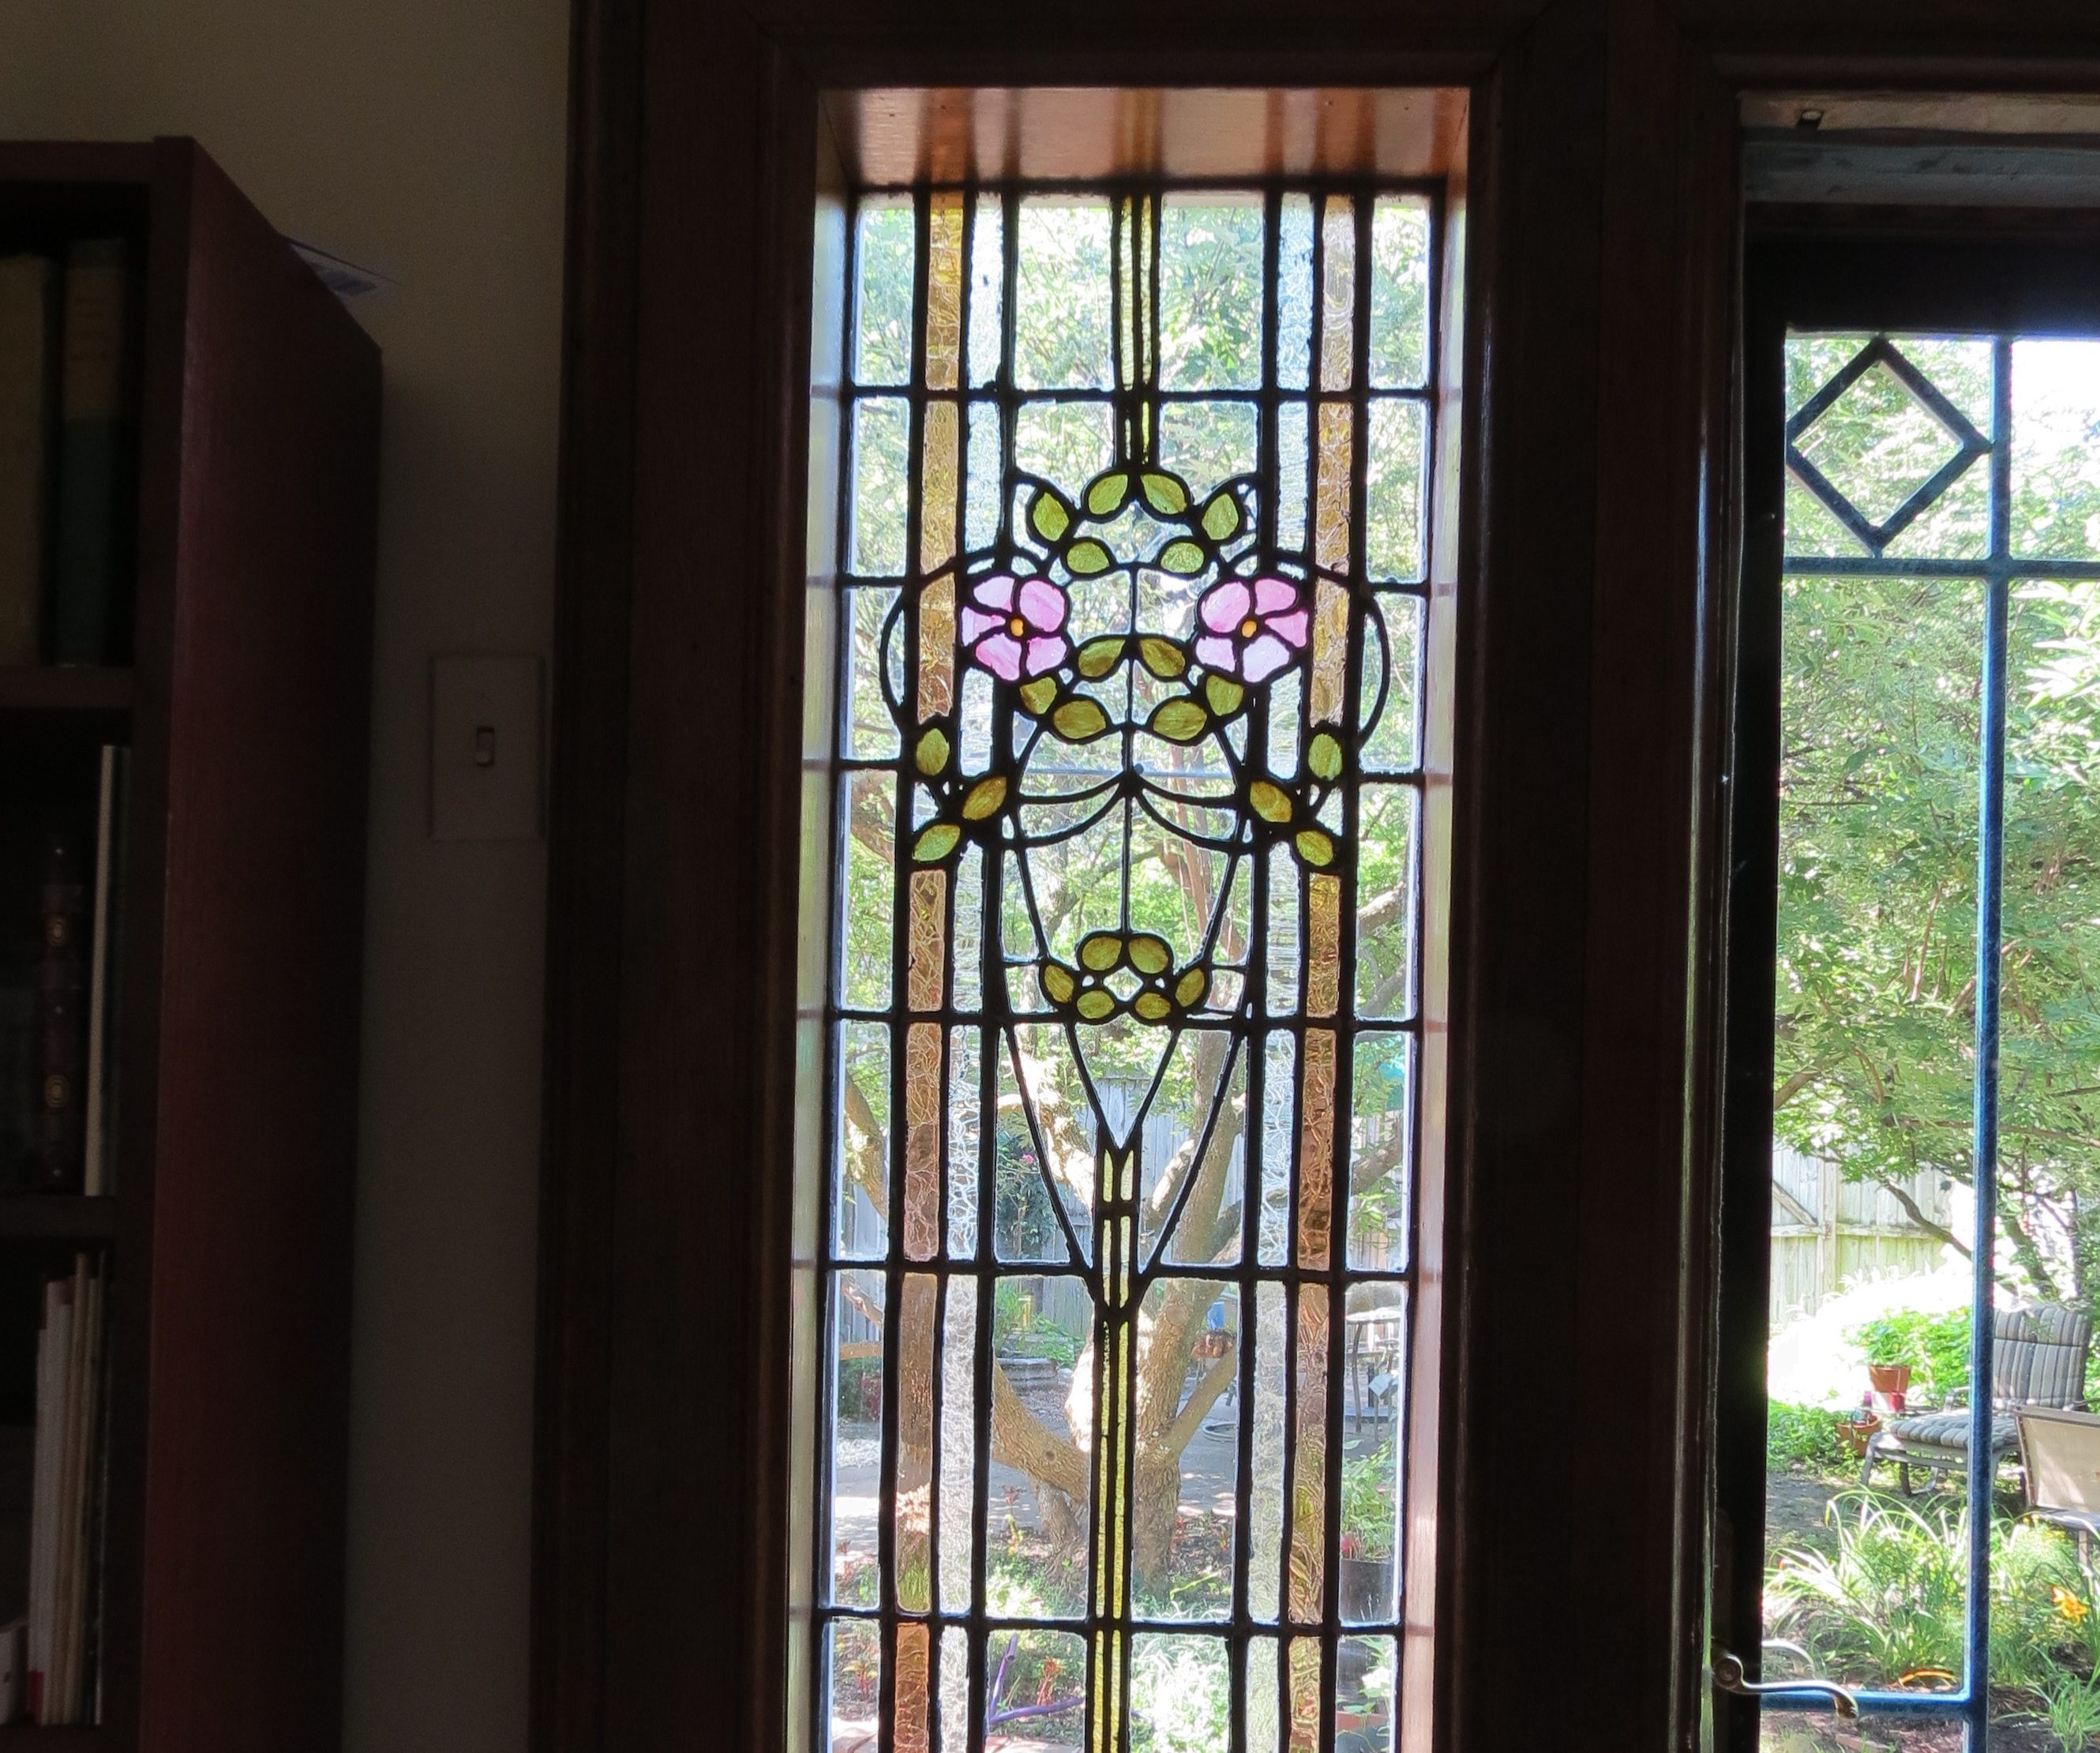 mccully art glass & restorations custom stained glass panels repair lafayette indiana